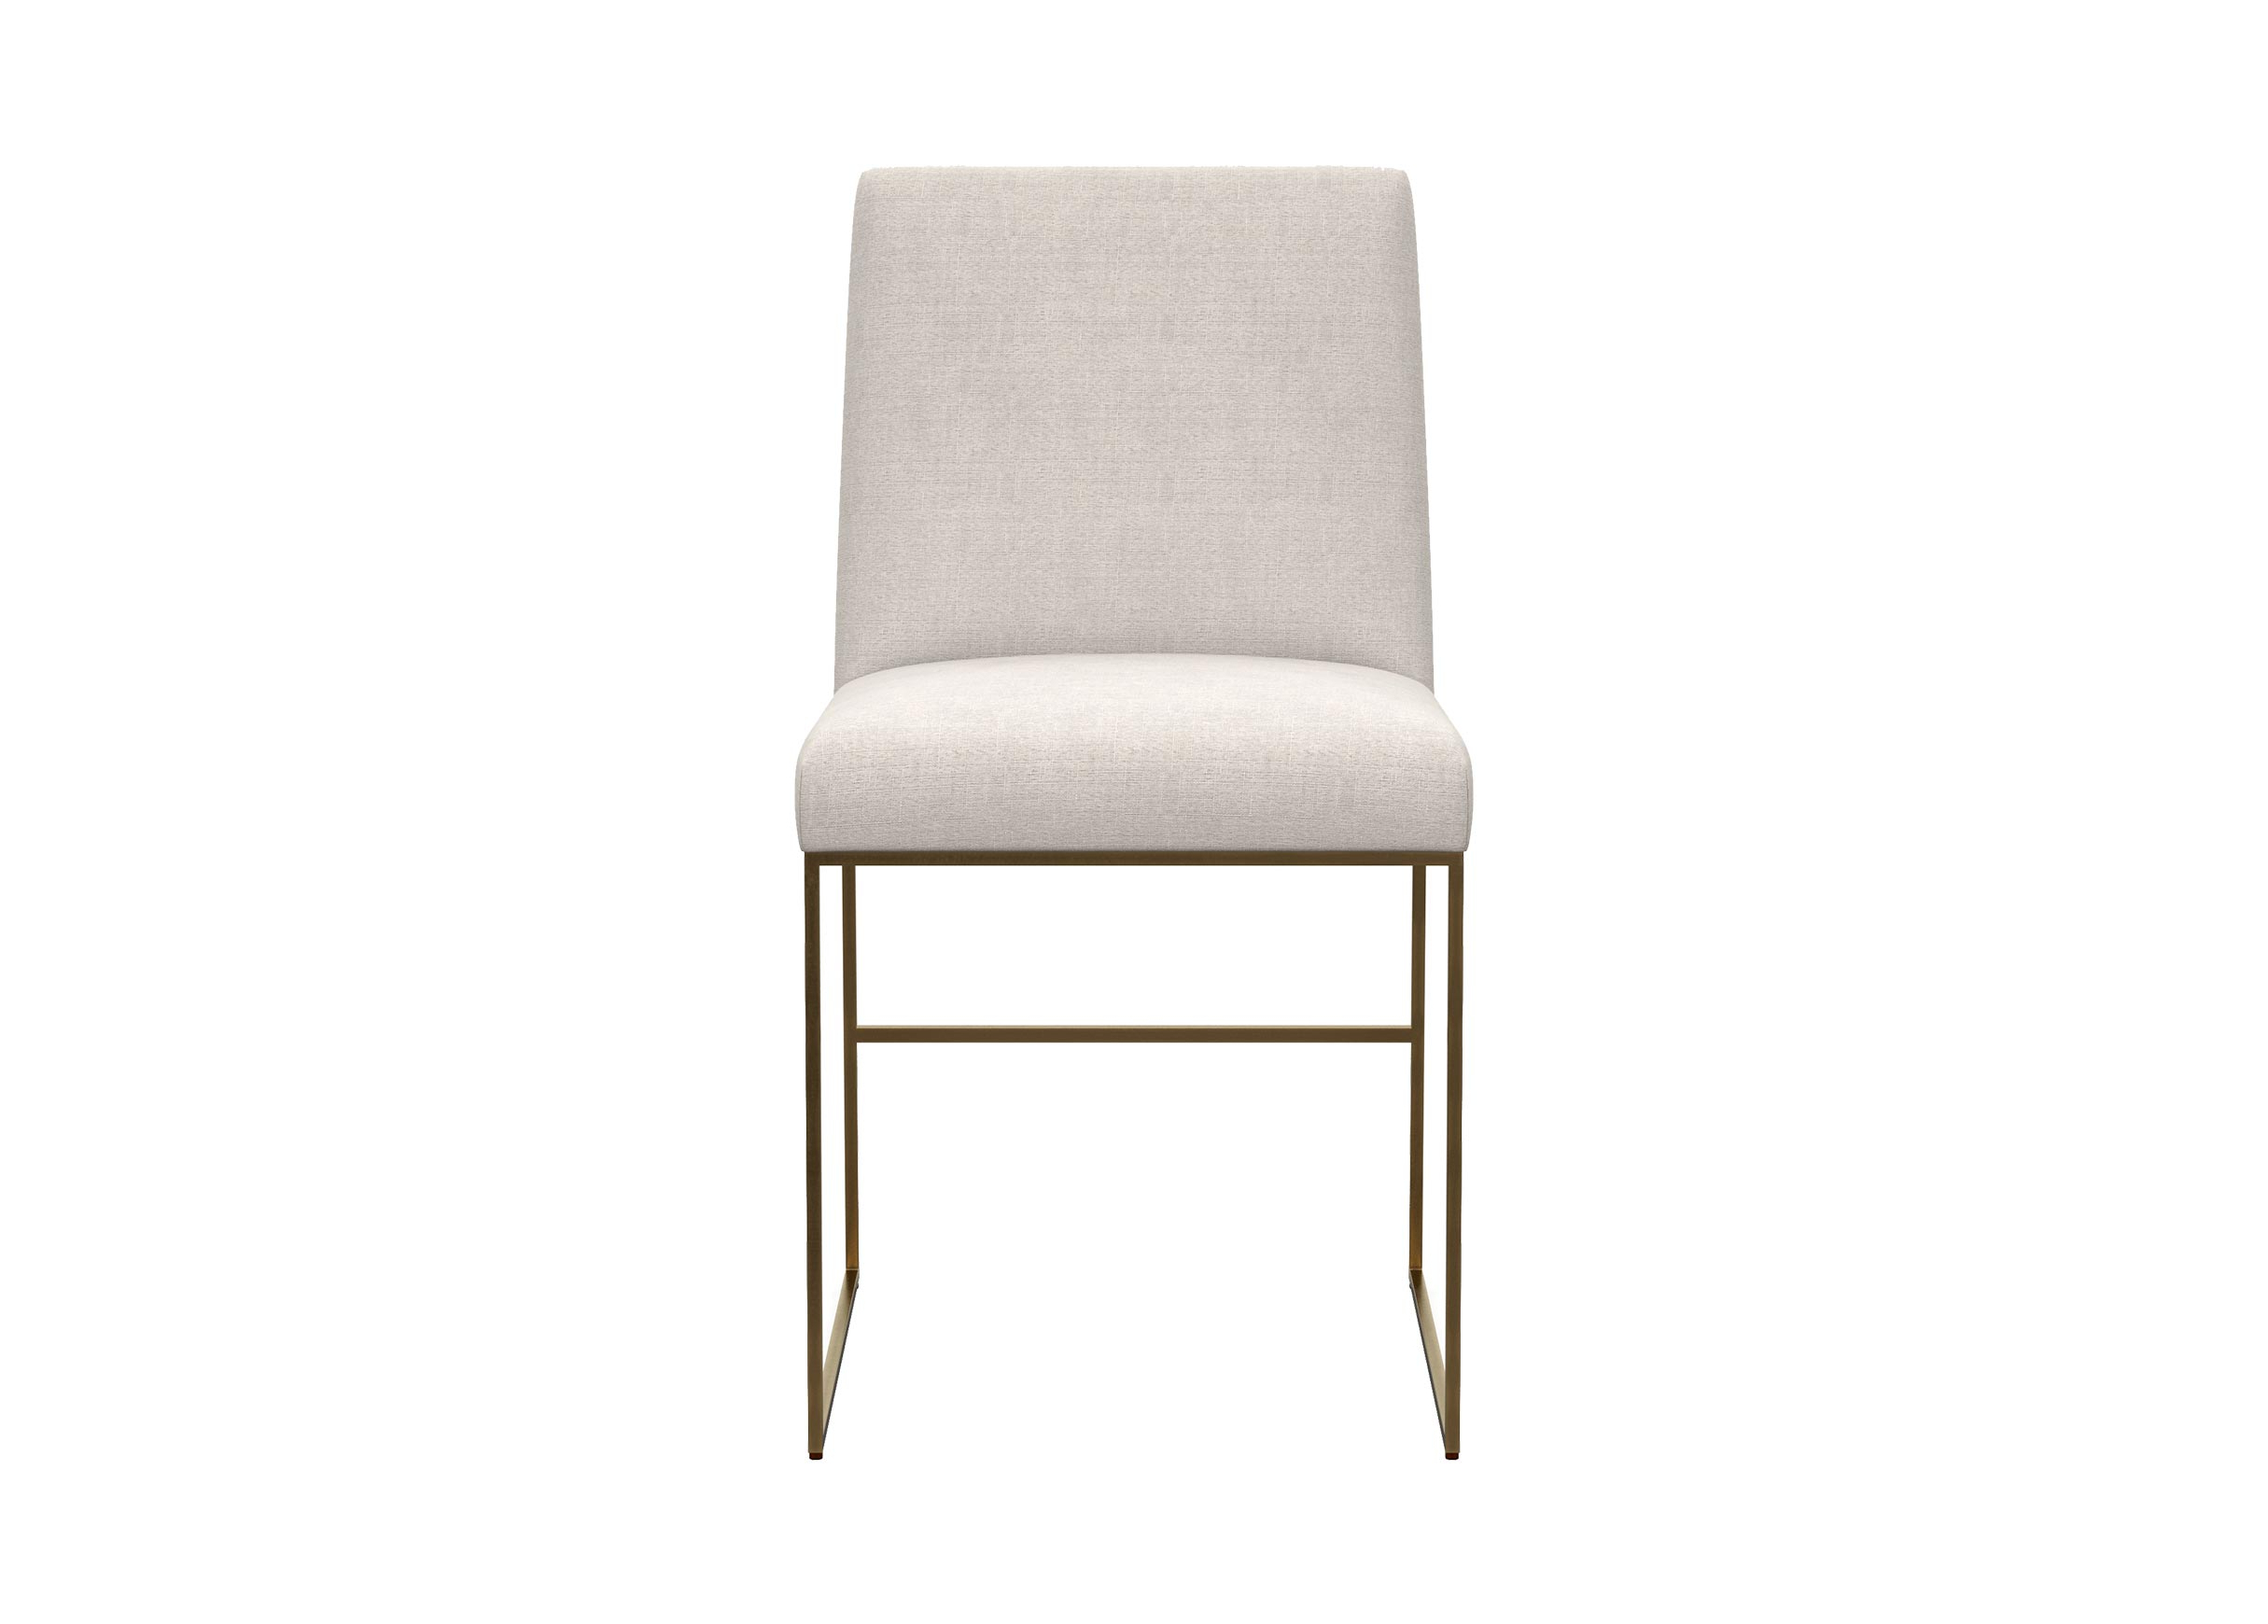 Jewel Dining Chair Metal Base Mixed Material | Ethan Allen Inside Nadine Wood And Stainless Steel Buffets (Gallery 18 of 20)